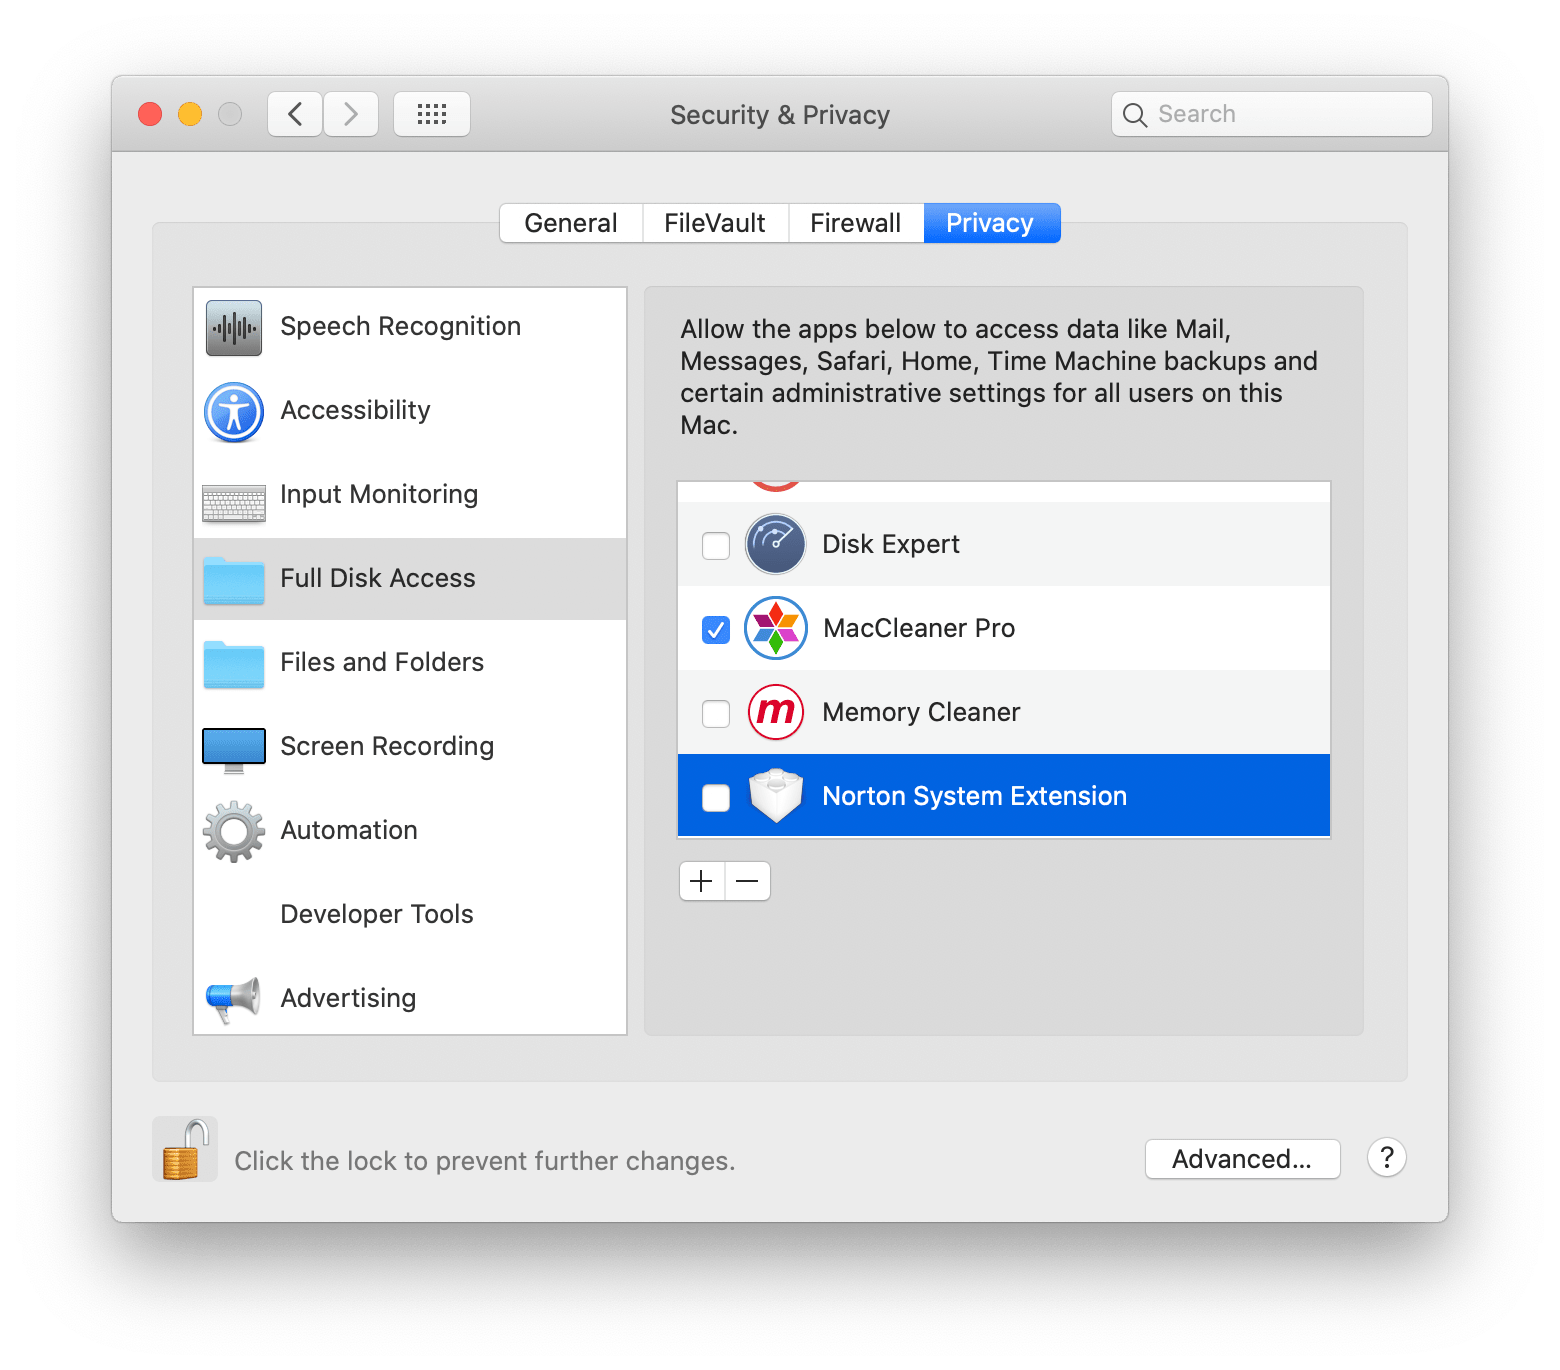 Full Disk Access MacCleaner Pro